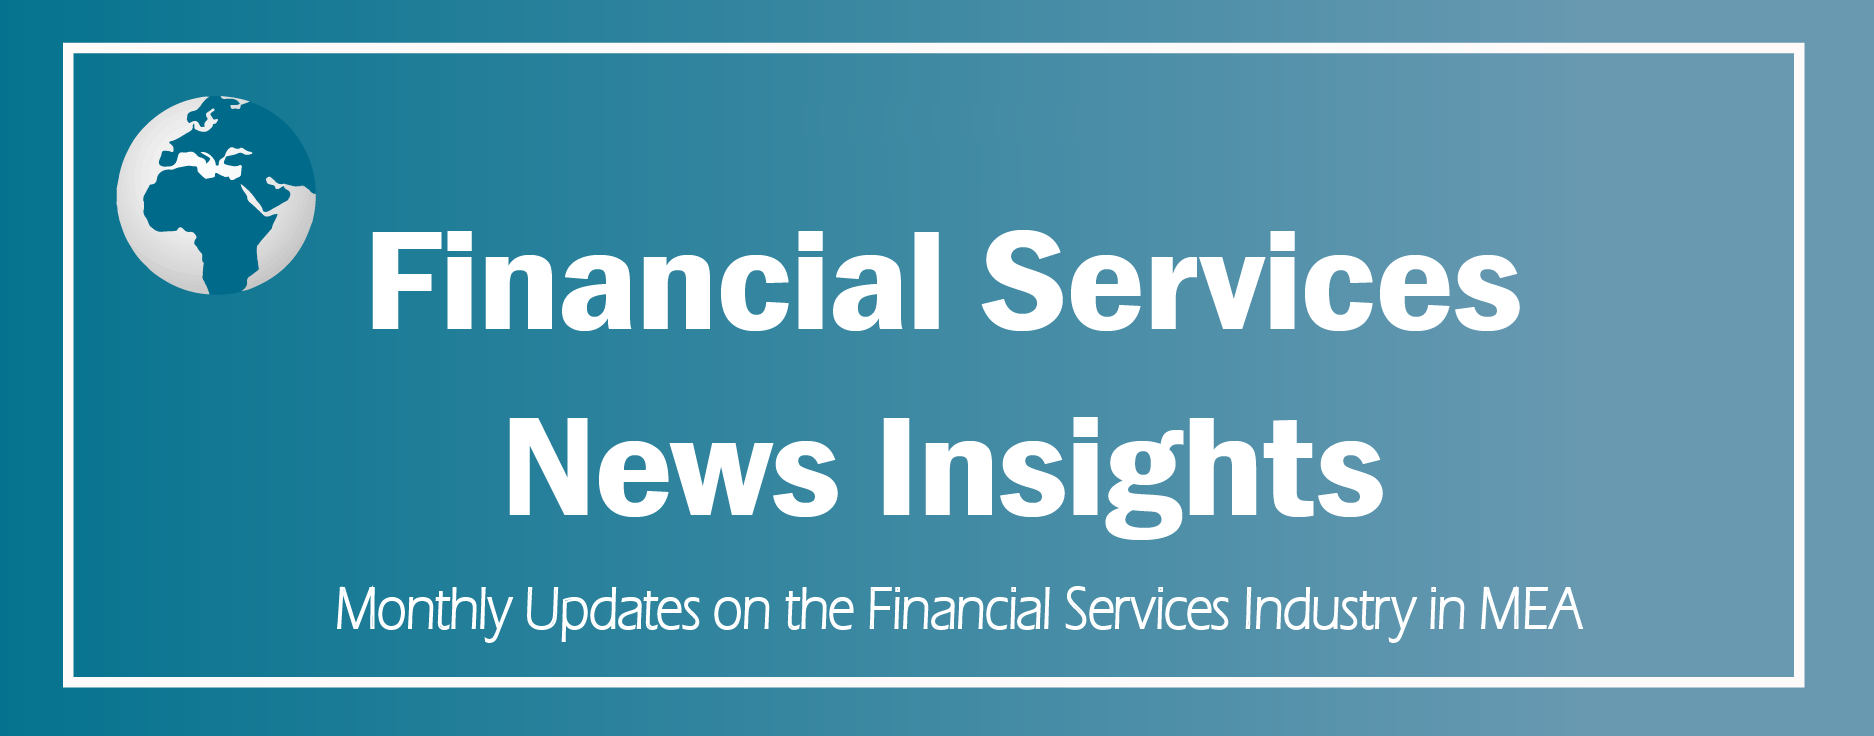 Financial Services Banner